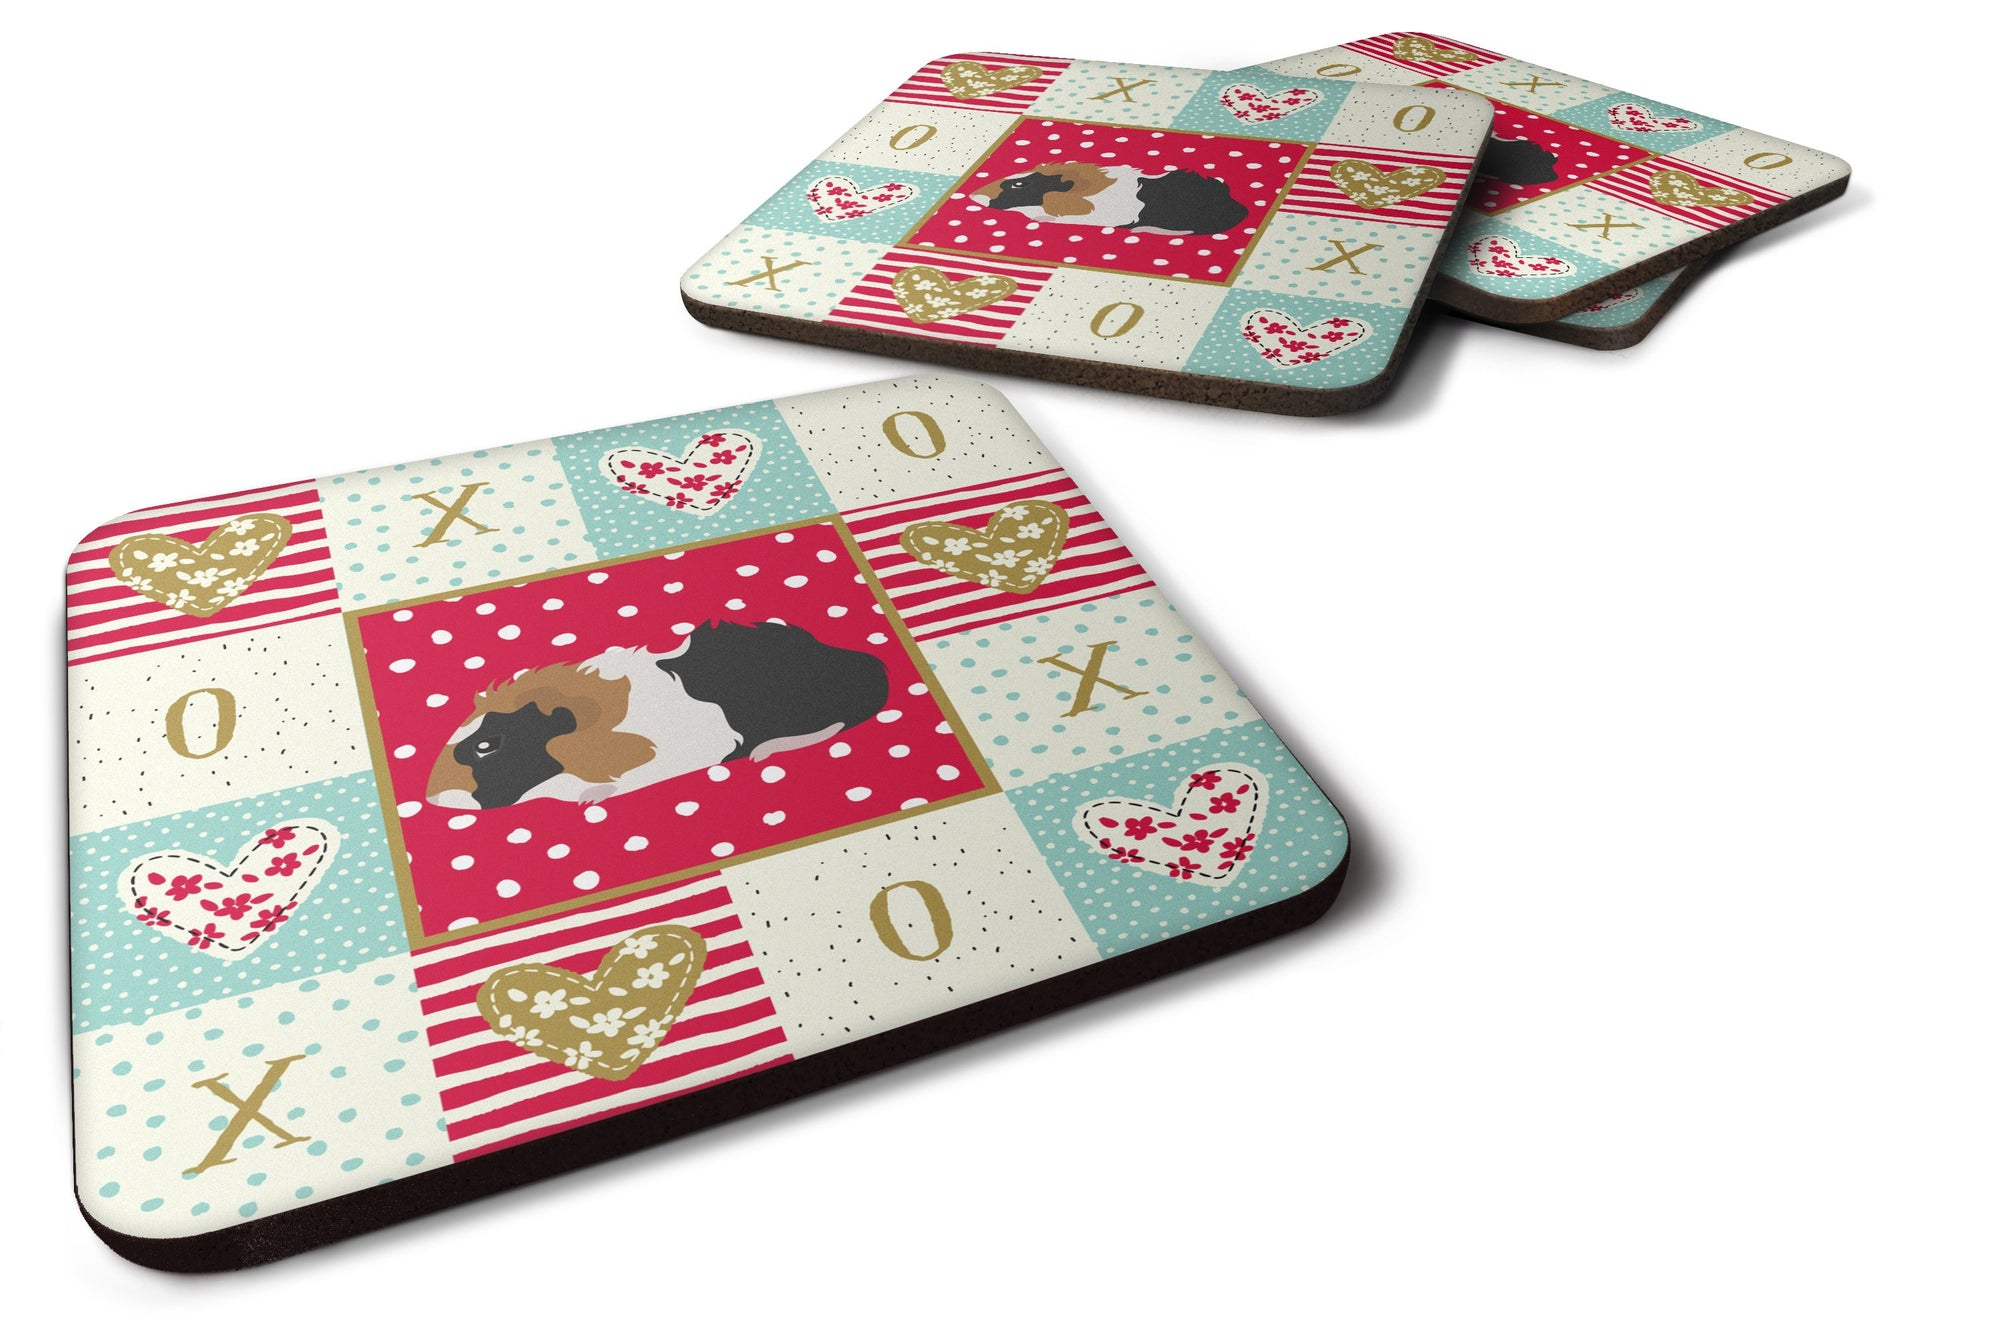 Set of 4 Abyssinian Guinea Pig Love Foam Coasters Set of 4 CK5426FC by Caroline's Treasures